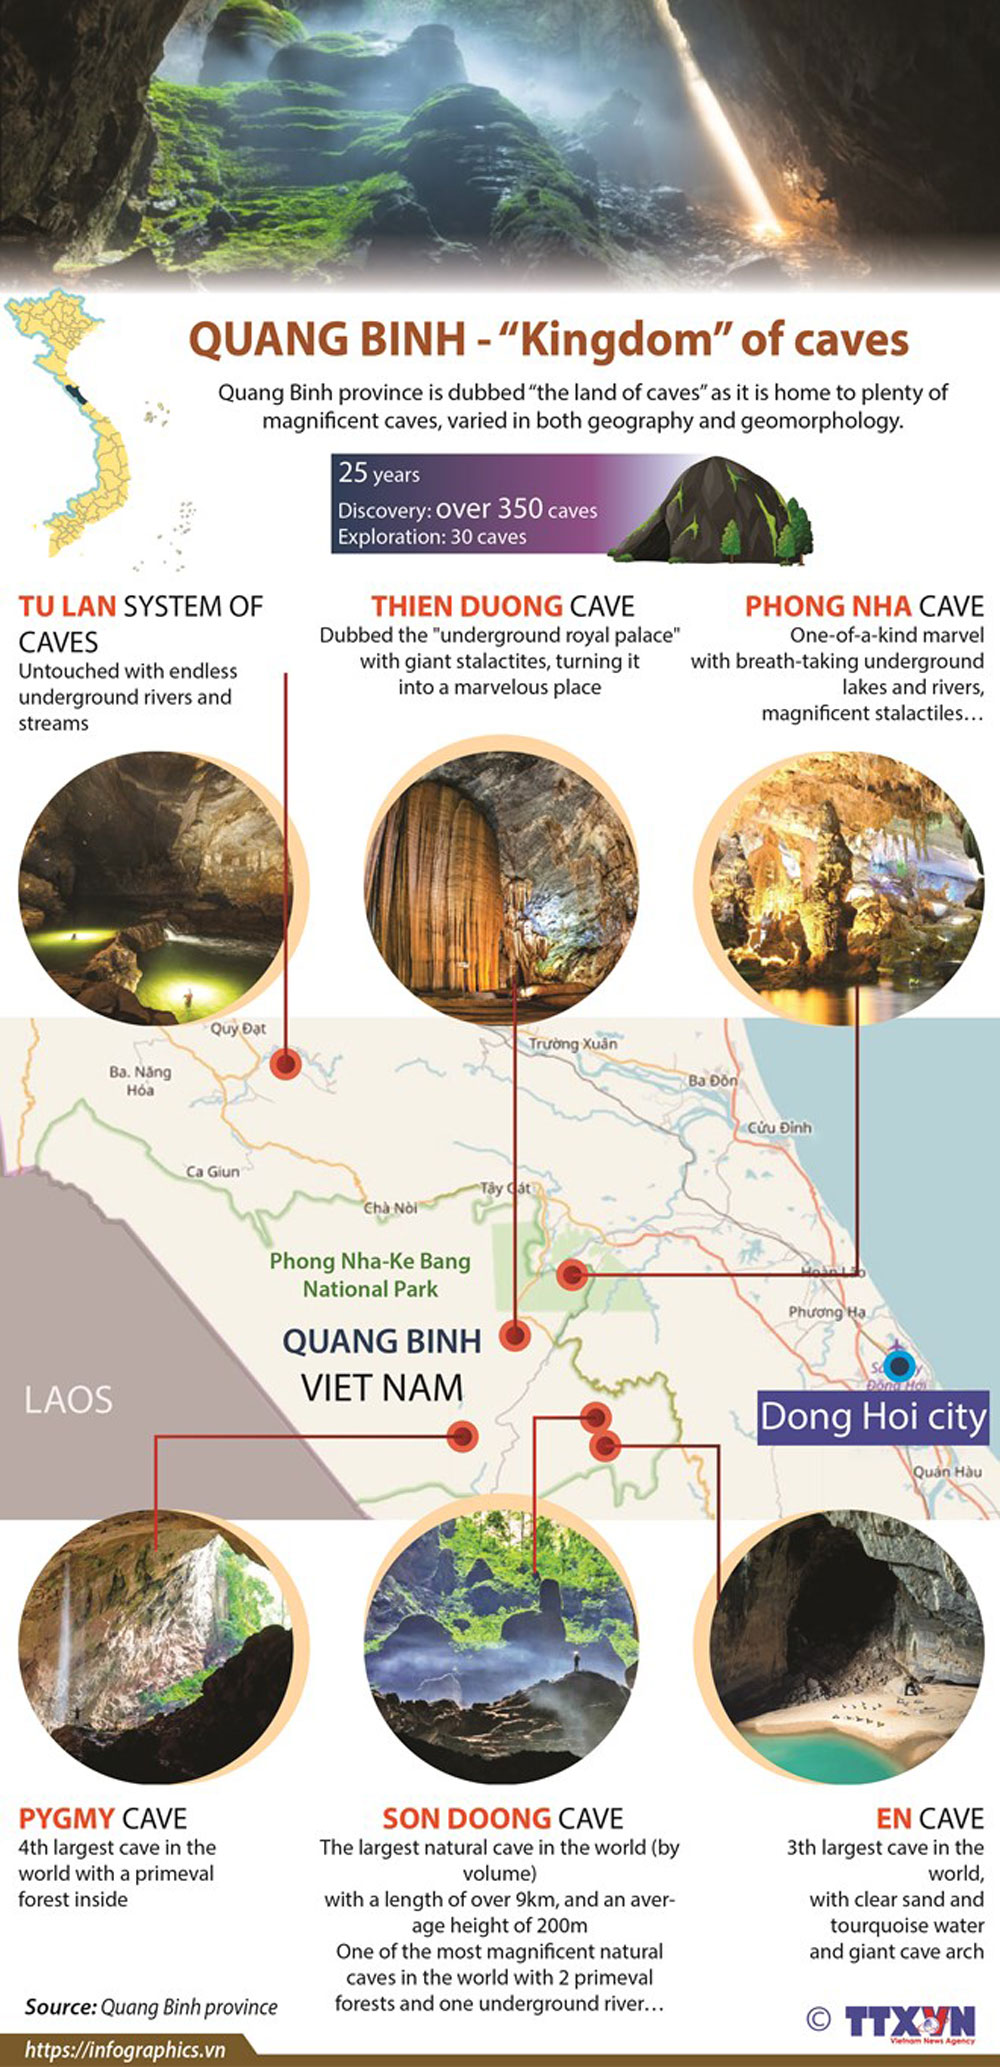 Quang Binh province, Kingdom of Caves, Son Doong cave system, Thien Duong cave, Asia Record